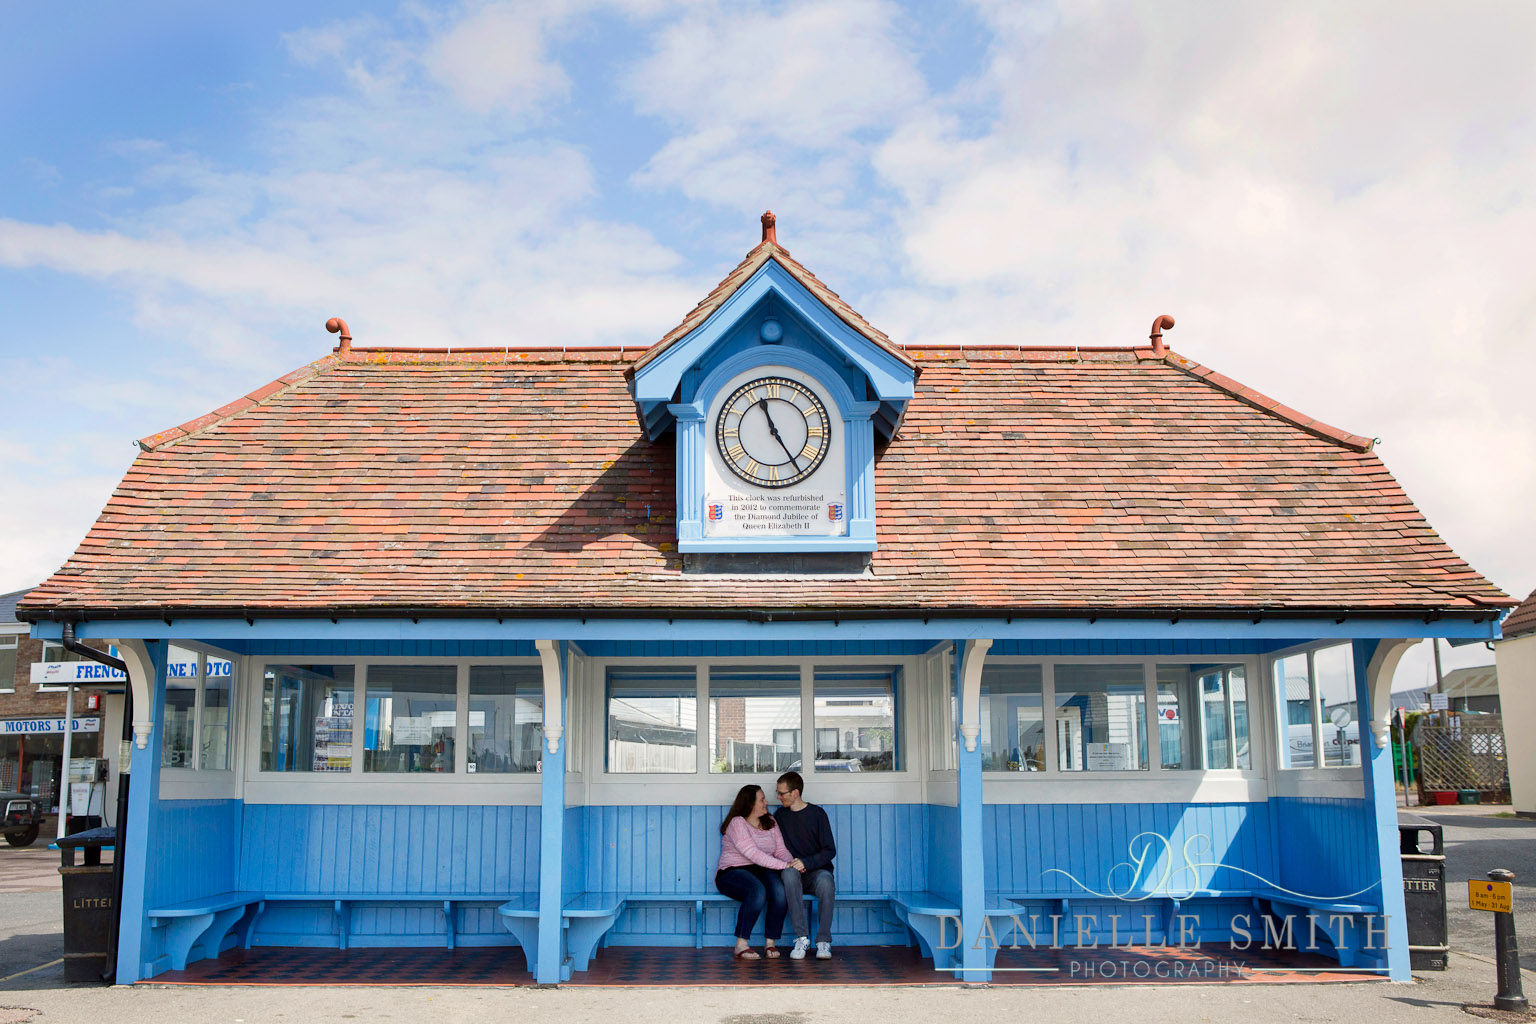 couple in bus shelter at beach town